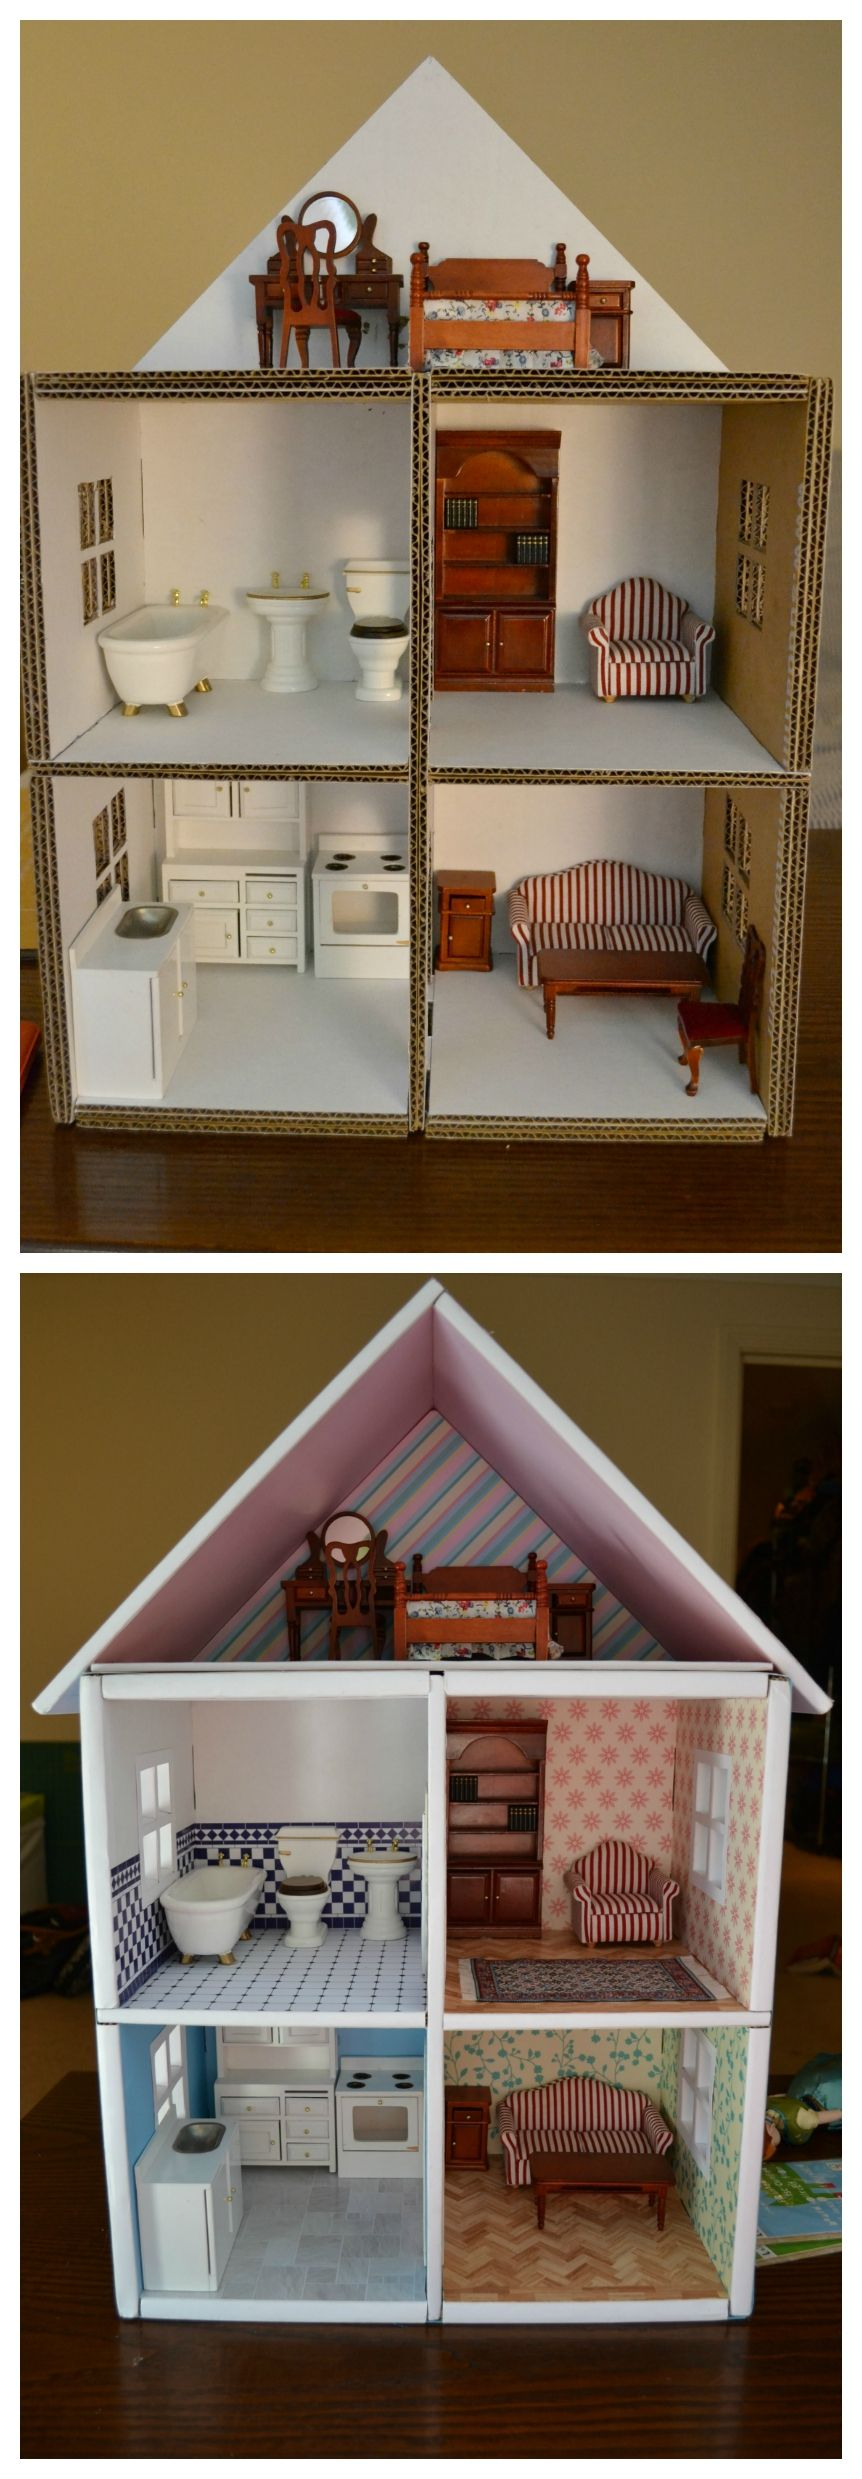 diy dollhouse made from cardboard boxes baby pinterest diy